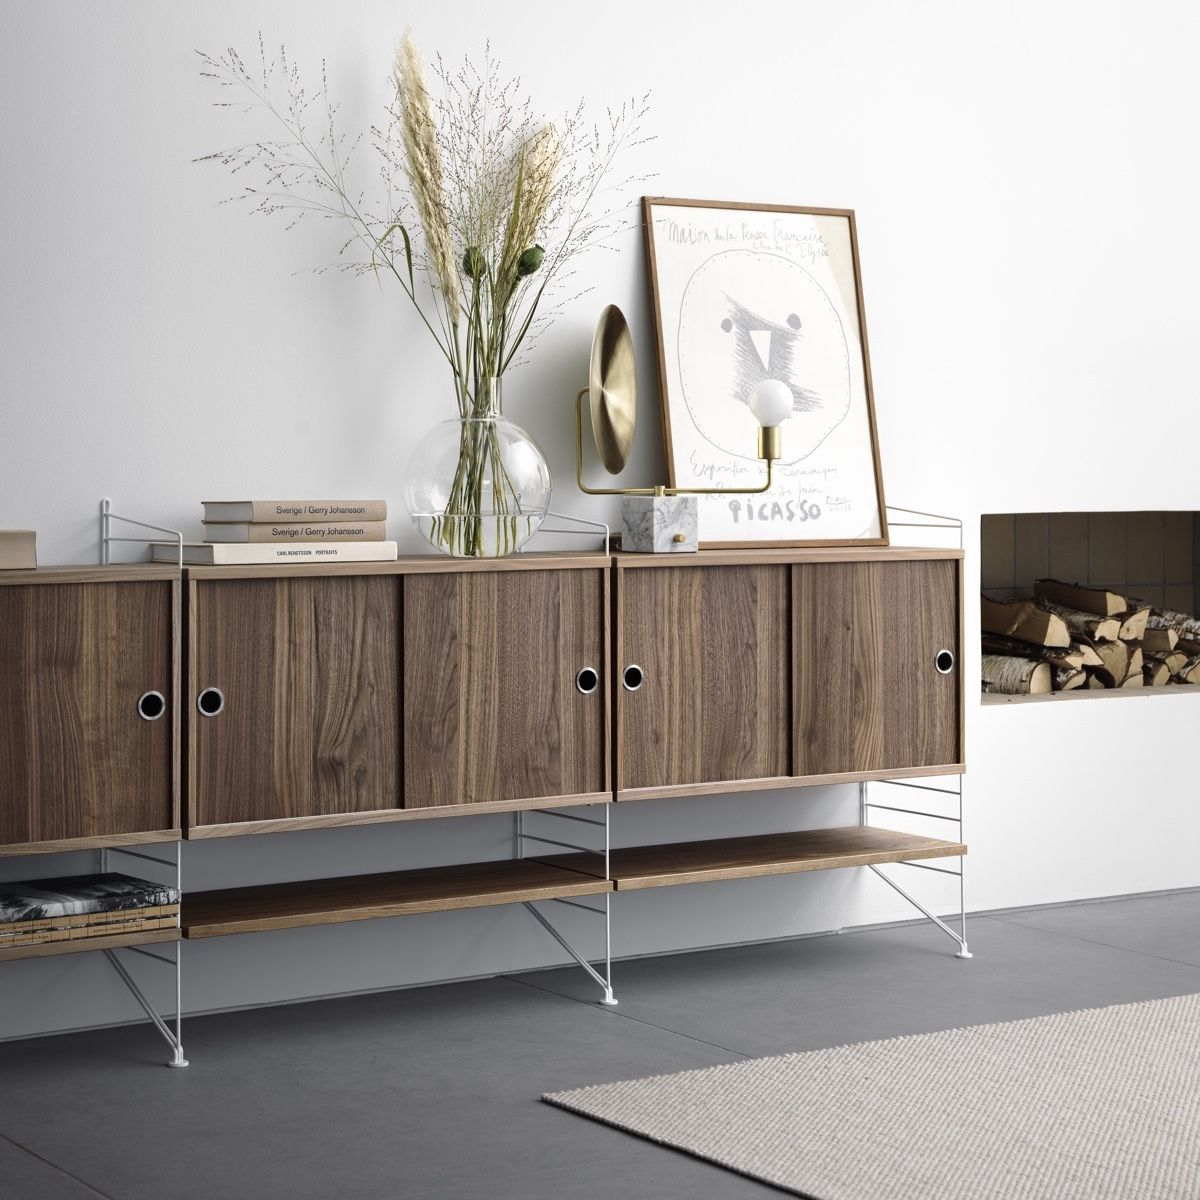 String shelving sideboard in walnut and shelves 78 x 30cm